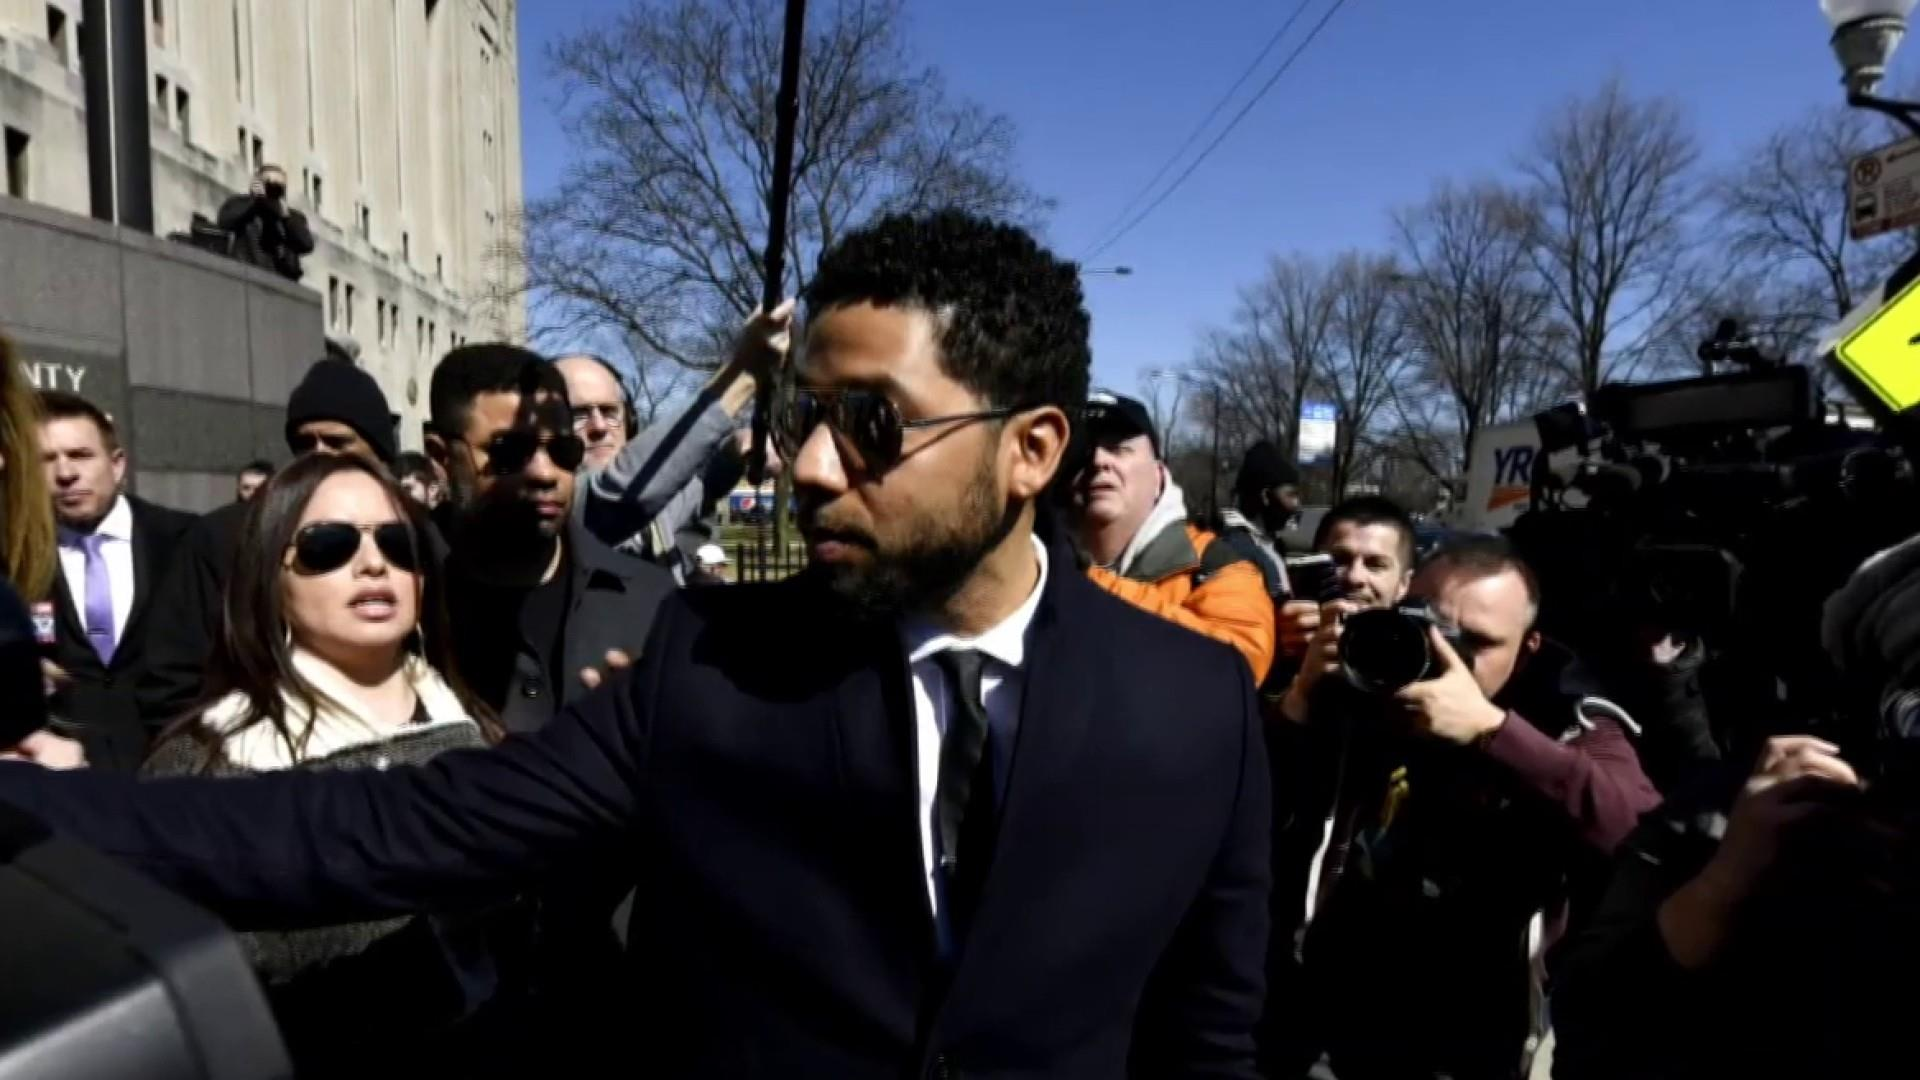 Why was Jussie Smollett's case sealed?